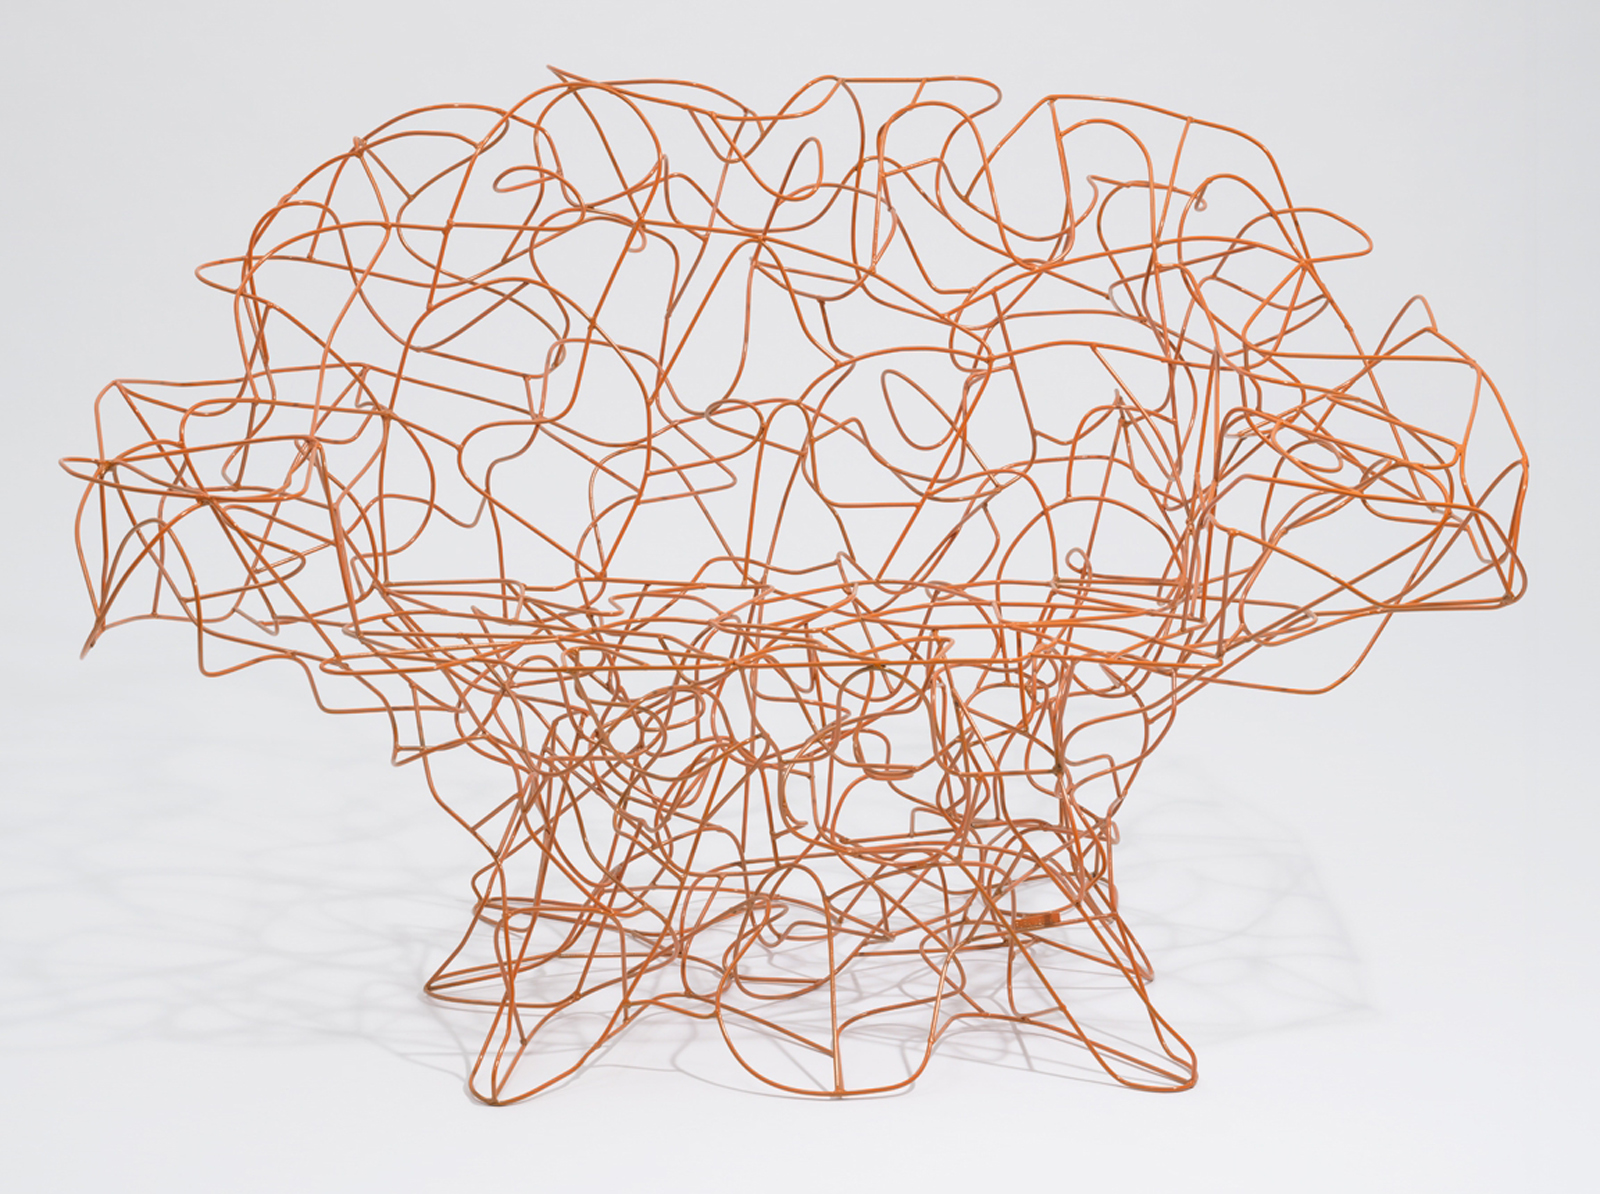 Certainly the most striking of the lot, for its size, color, and form, the Corallo Chair is classic Campana brothers. The bent steel wire is meant to recall the random dynamism of coral branches, and when coated with bright epoxy paint, it also references